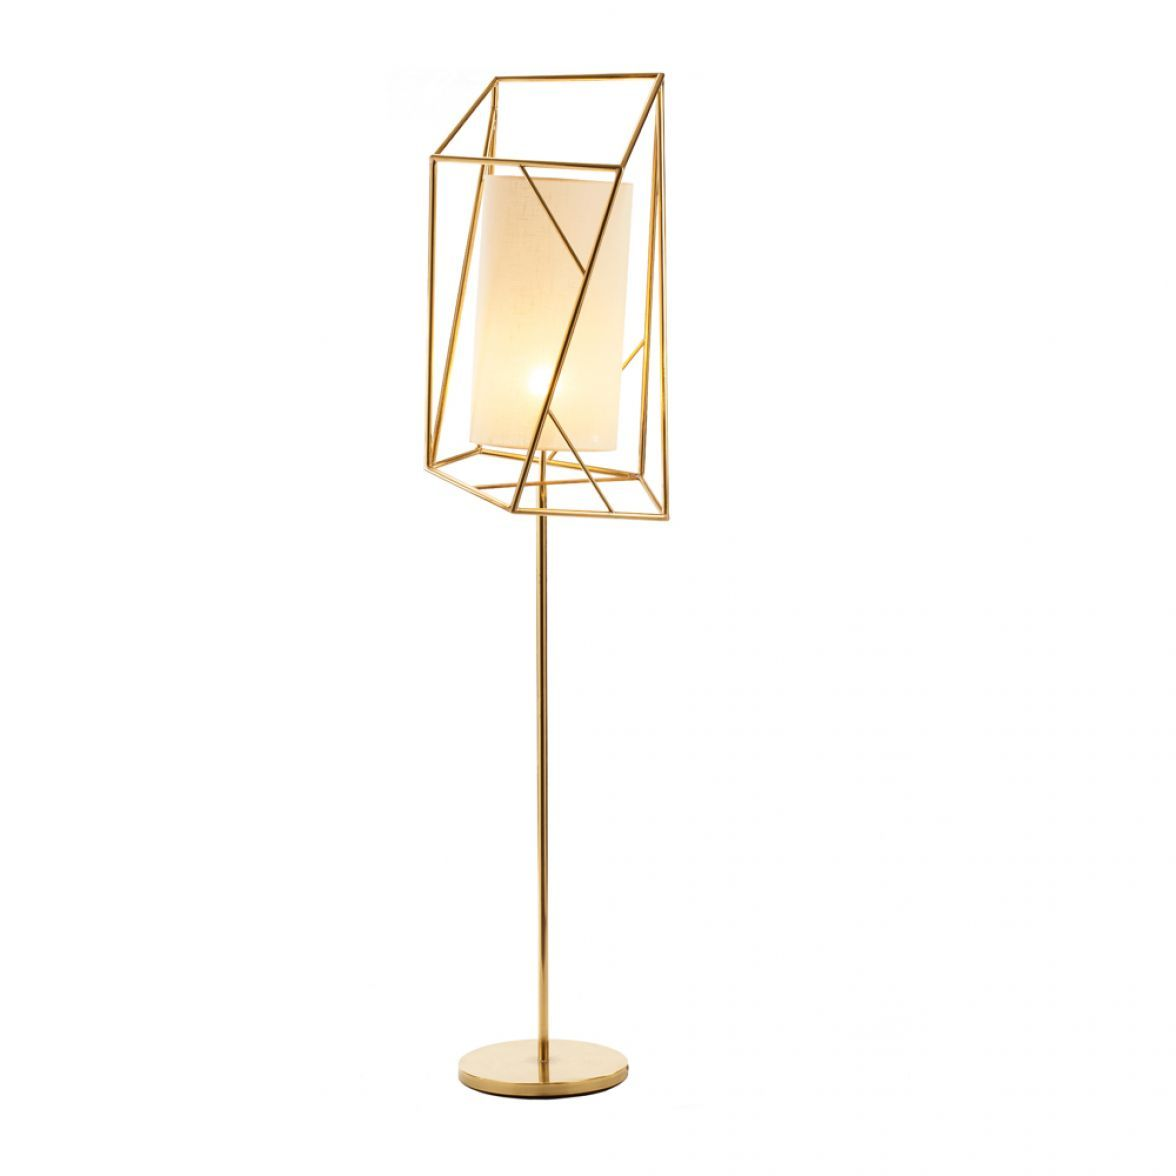 Star floor lamp фото цена